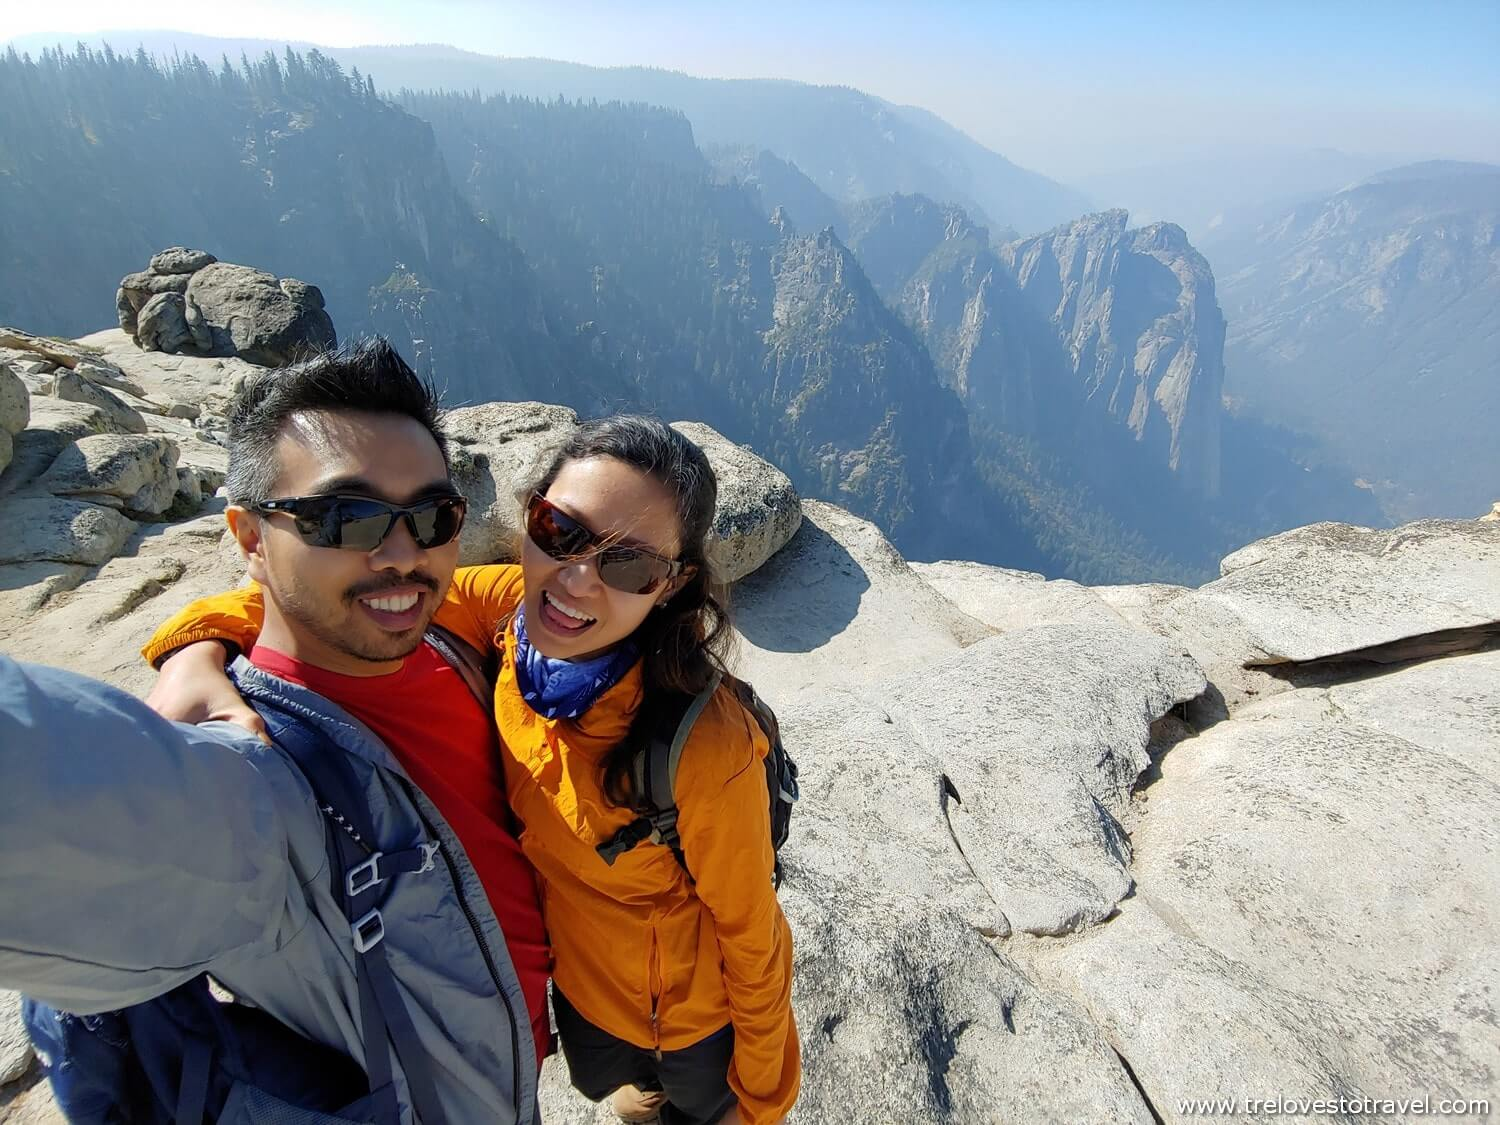 Easy Hikes in Yosemite National Park